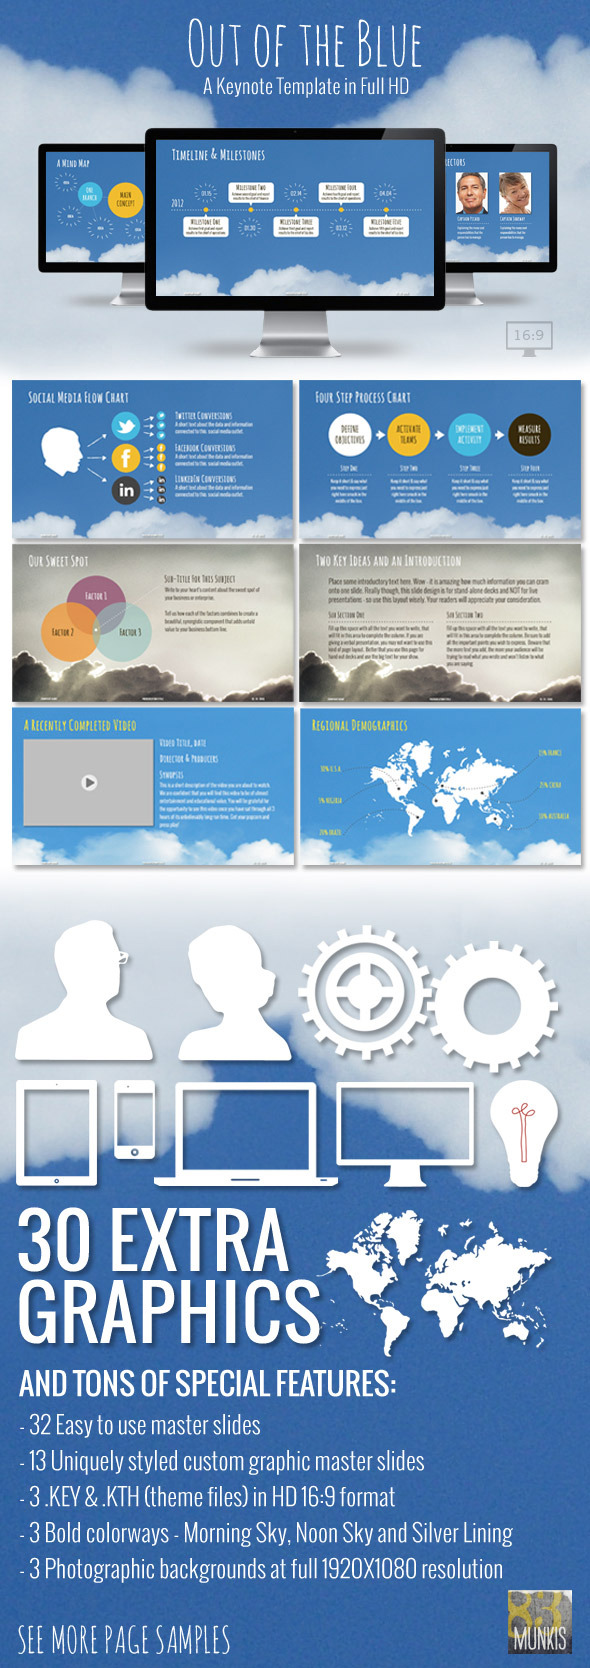 Out of the Blue Keynote Presentation Template - Creative Keynote Templates